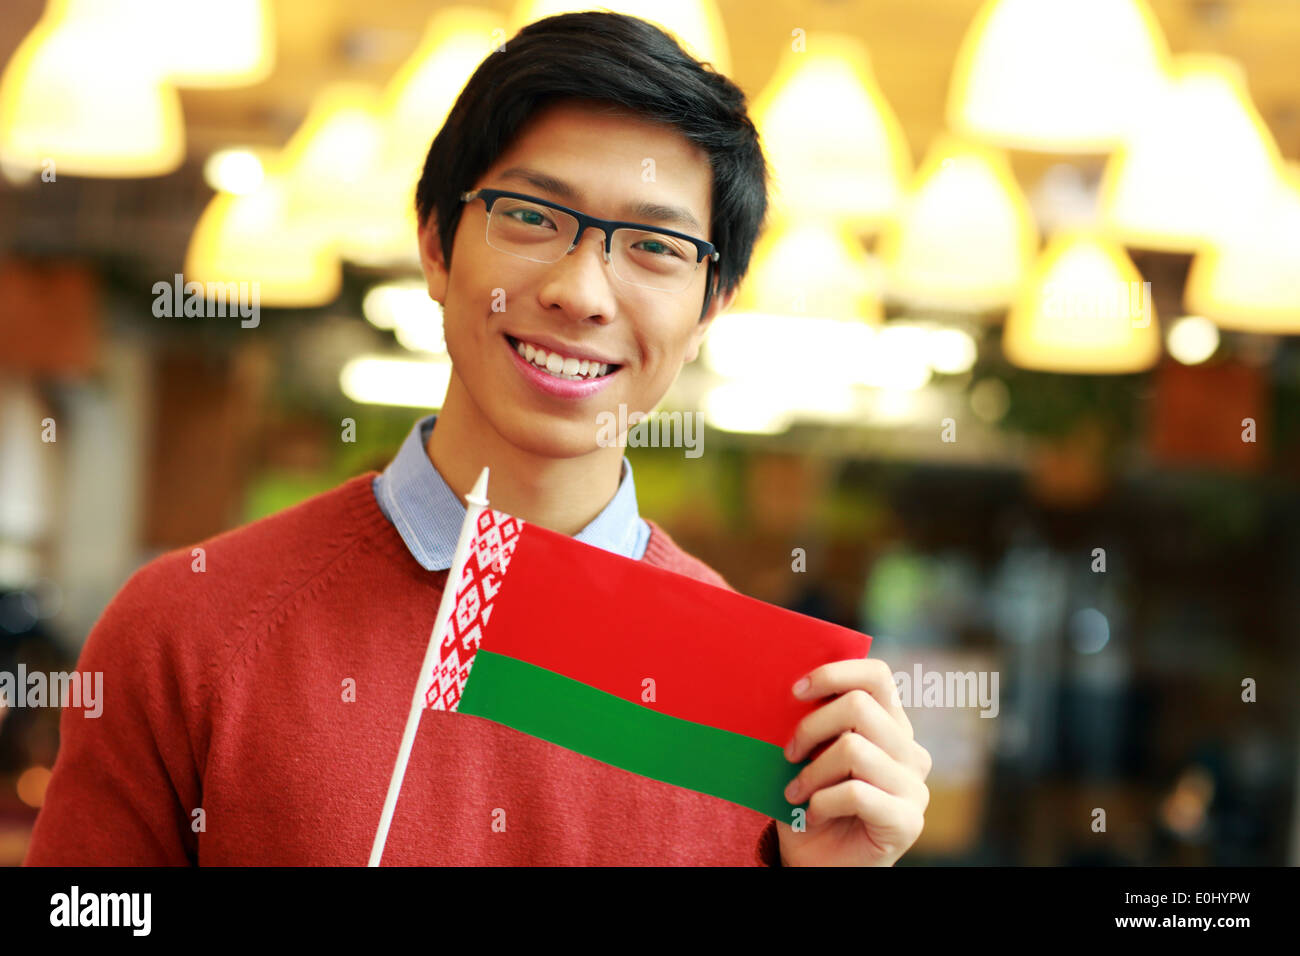 Happy young asian boy holding flag of Belarus - Stock Image